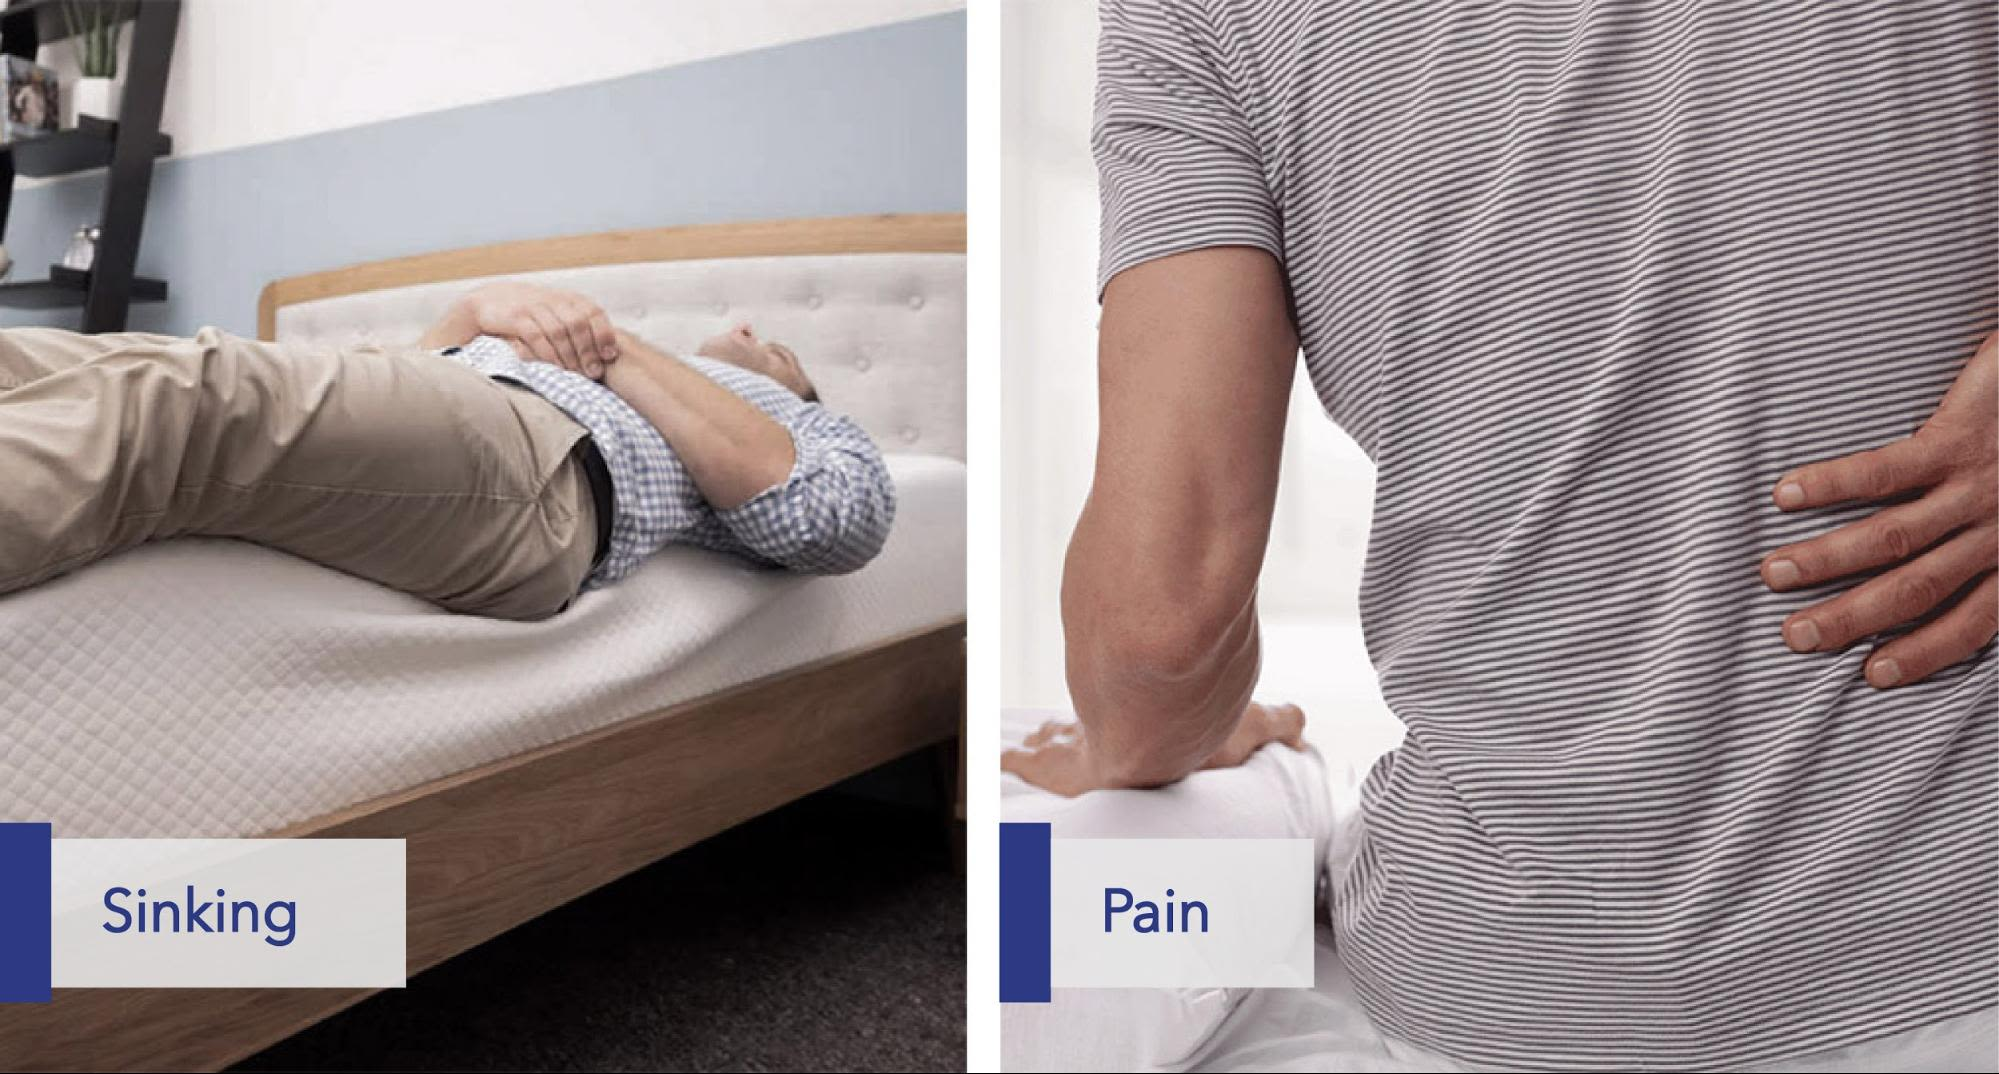 Sinking and Pain due to a mattress